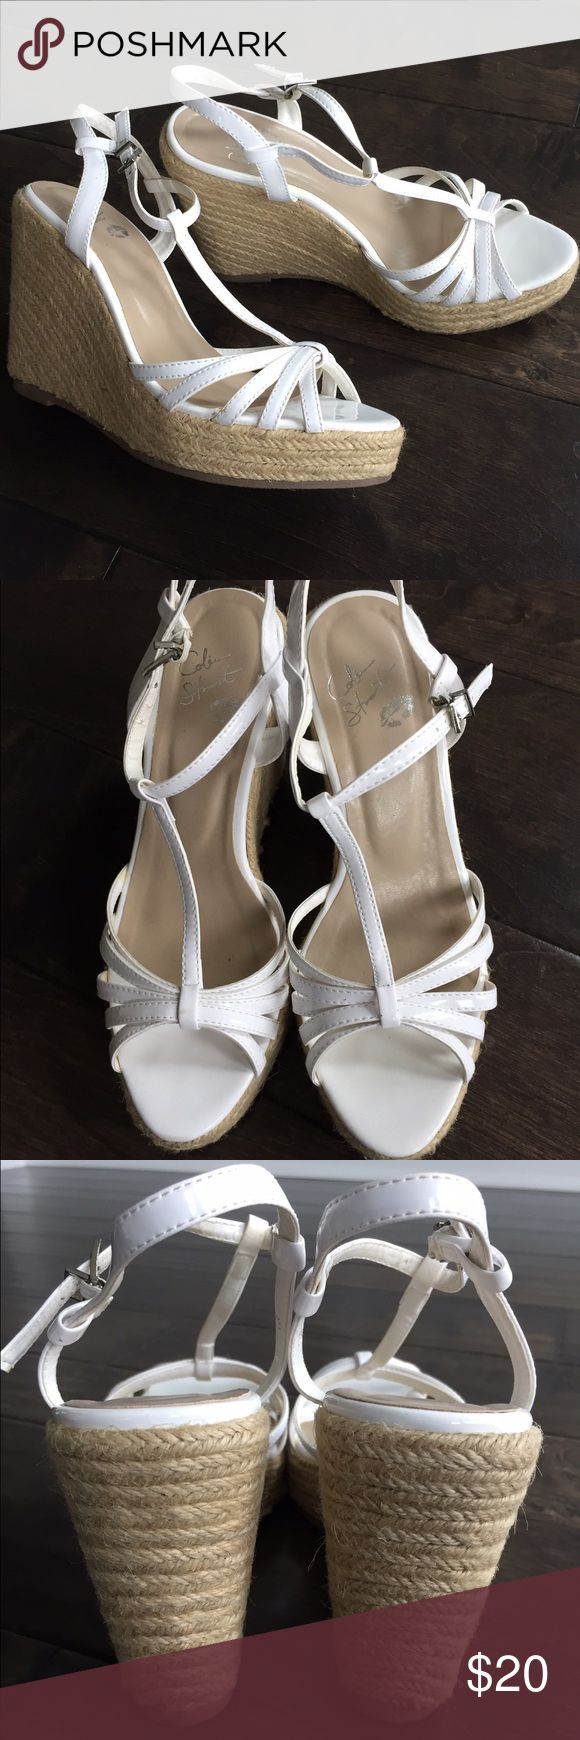 Colin Stuart white espadrilles Colin Stuart white strappy espadrille wedge sandals. Excellent used condition. Colin Stuart Shoes Espadrilles